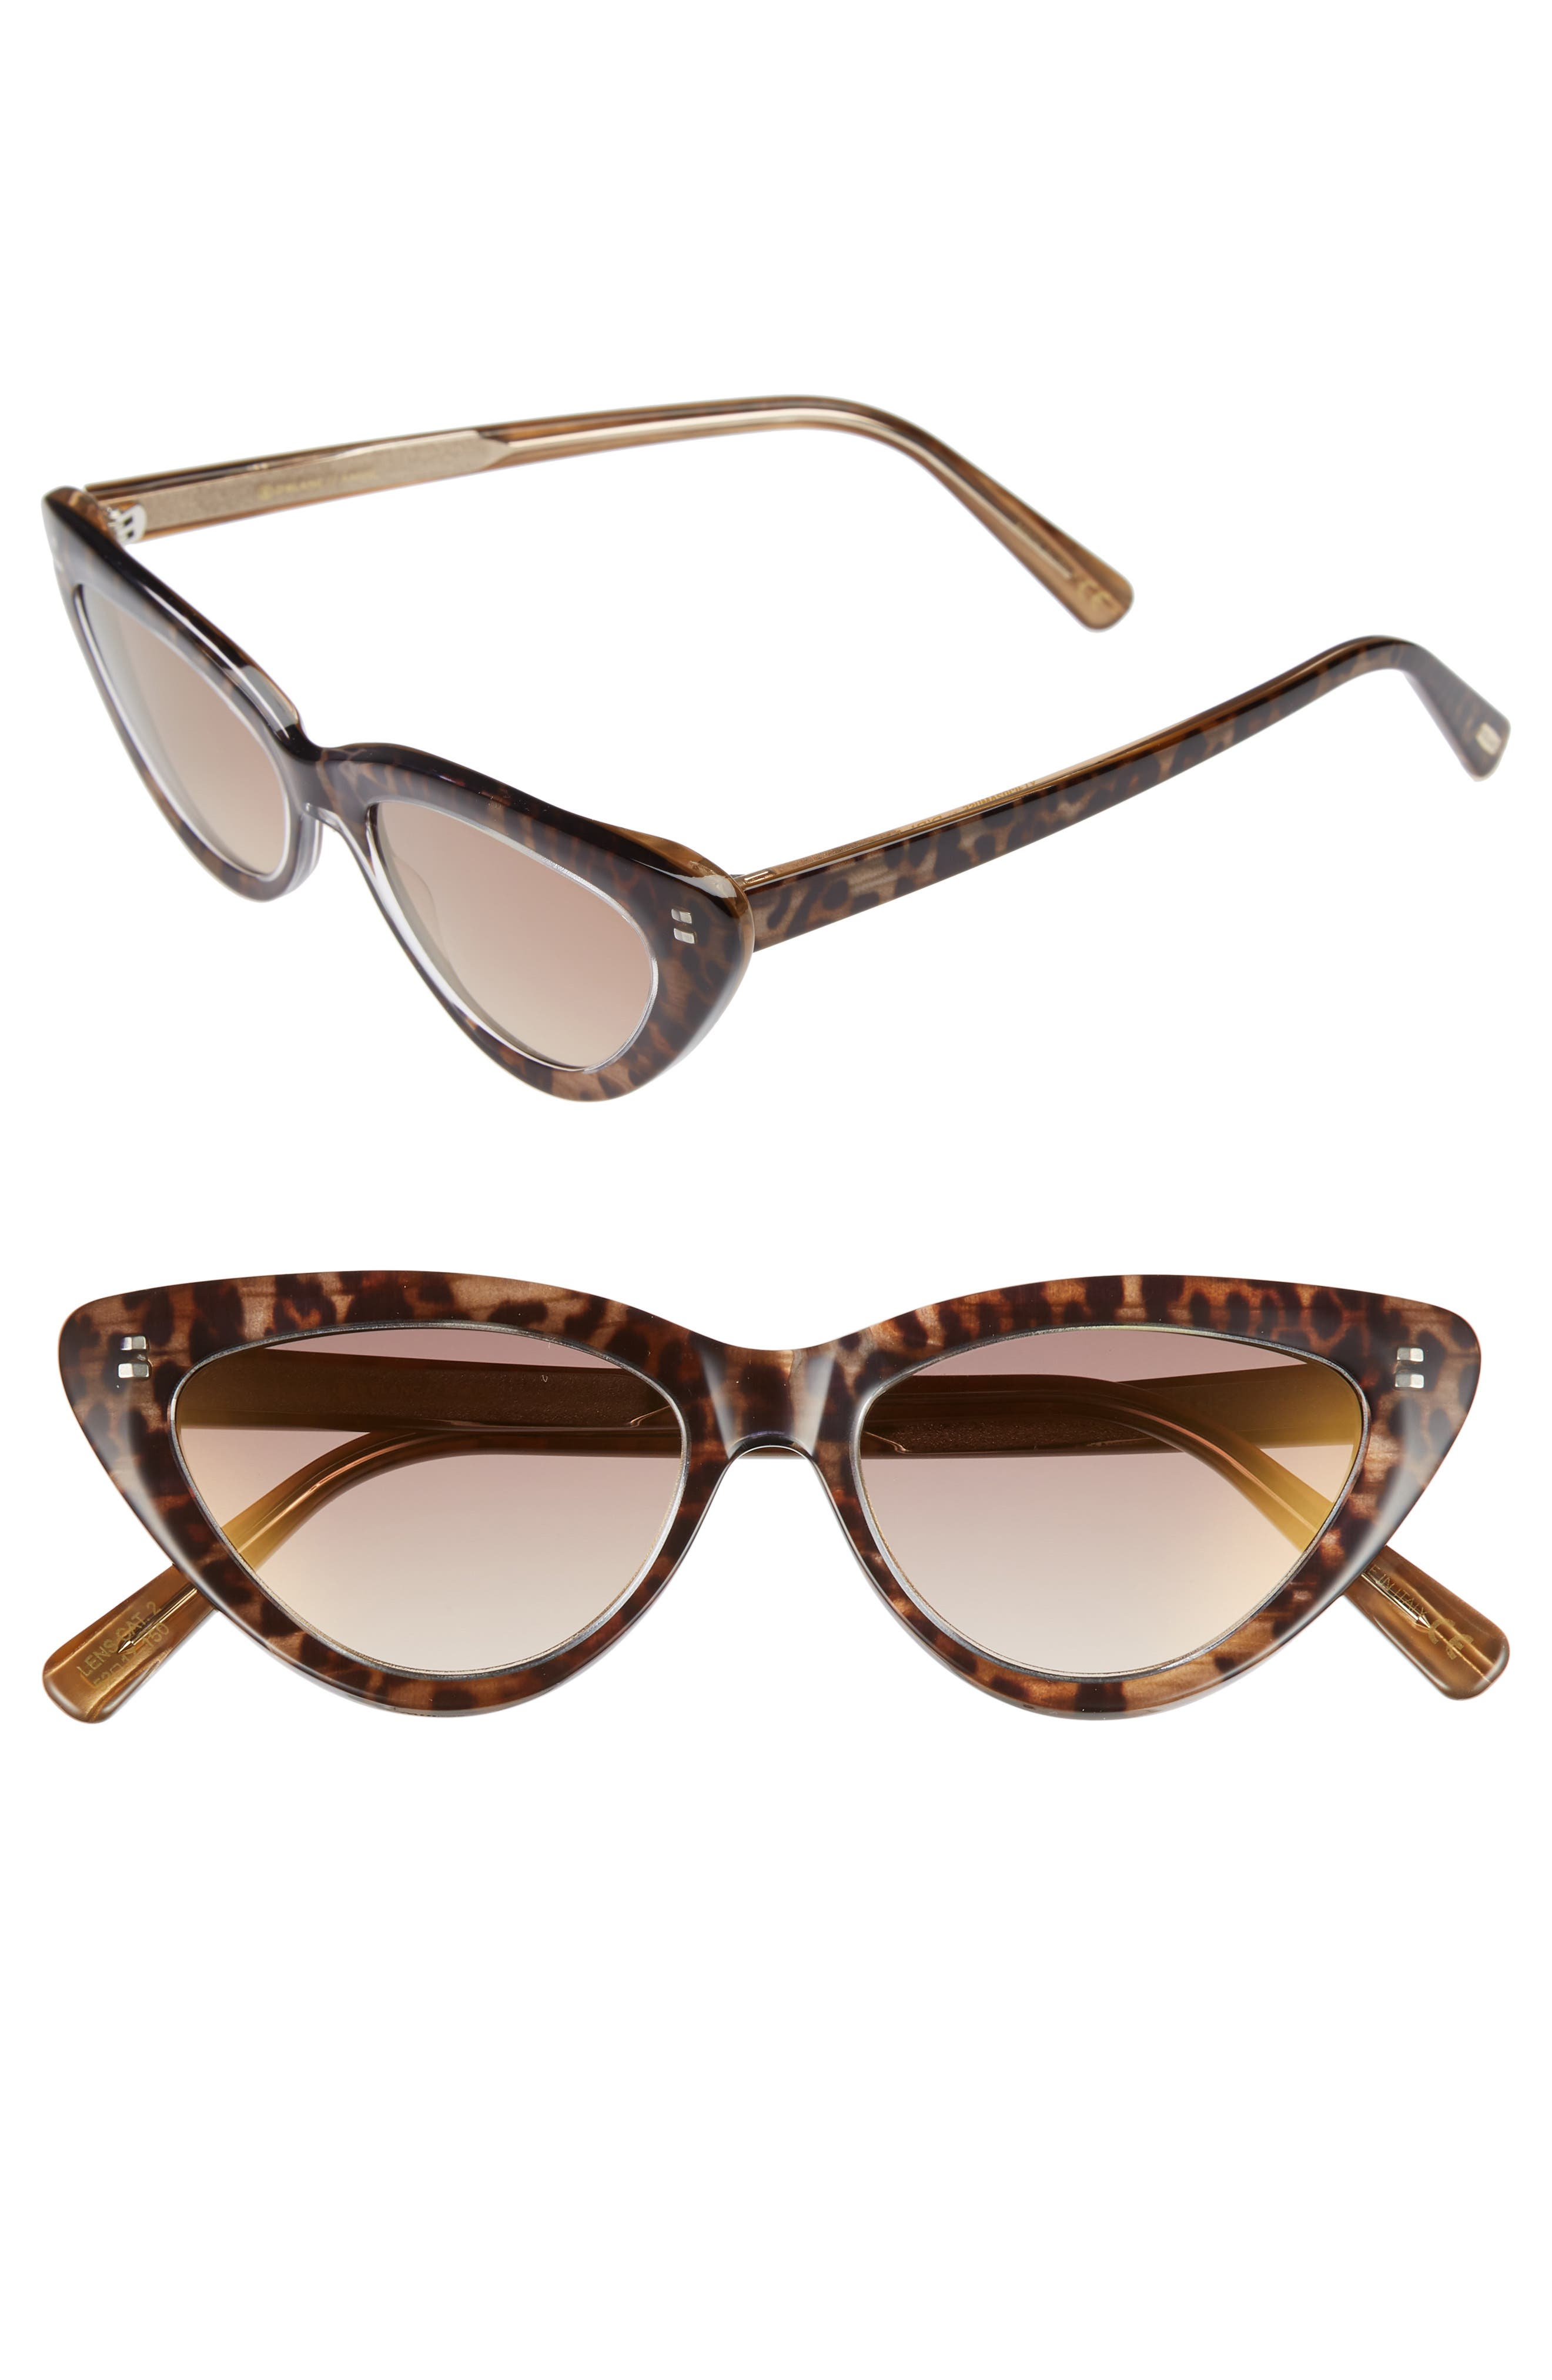 D'BLANC A-Muse 52mm Sunglasses,                             Main thumbnail 1, color,                             CHEETAH